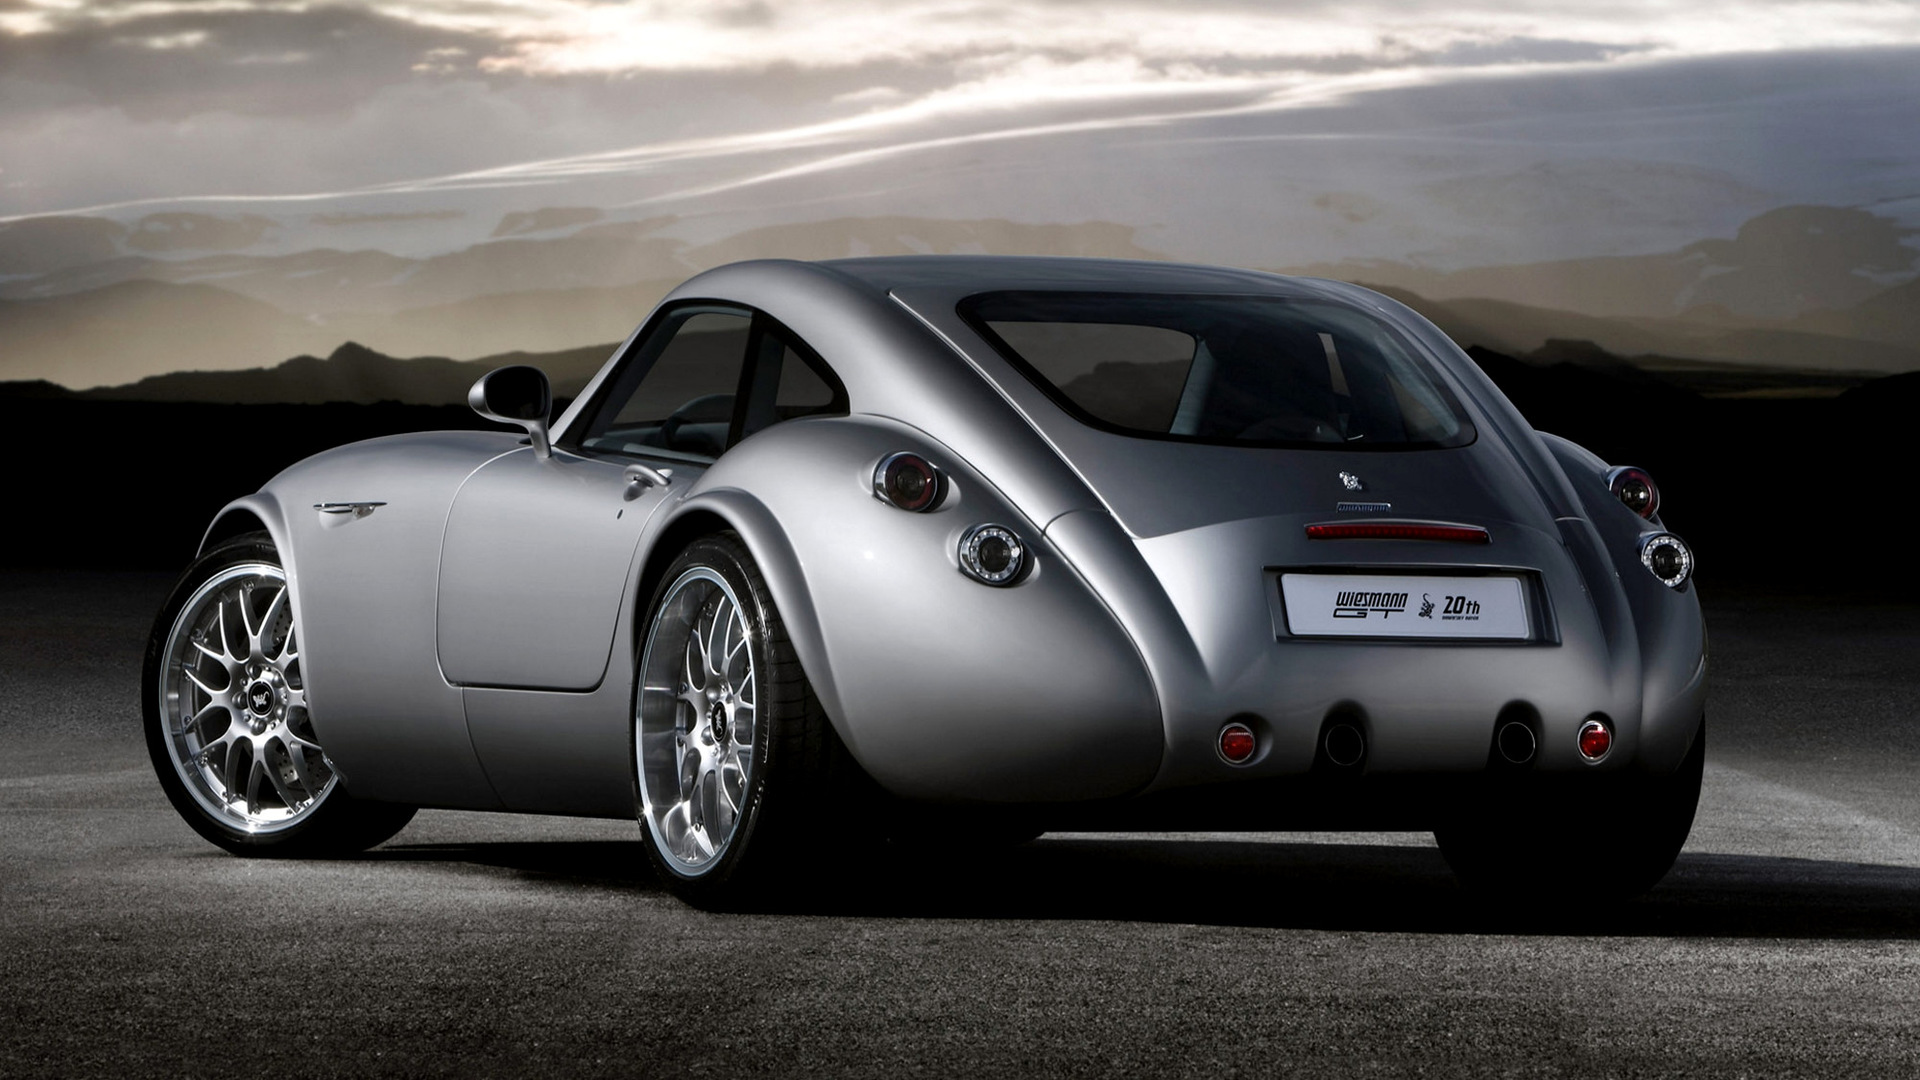 1920x1080 - Wiesmann GT MF4 Wallpapers 39